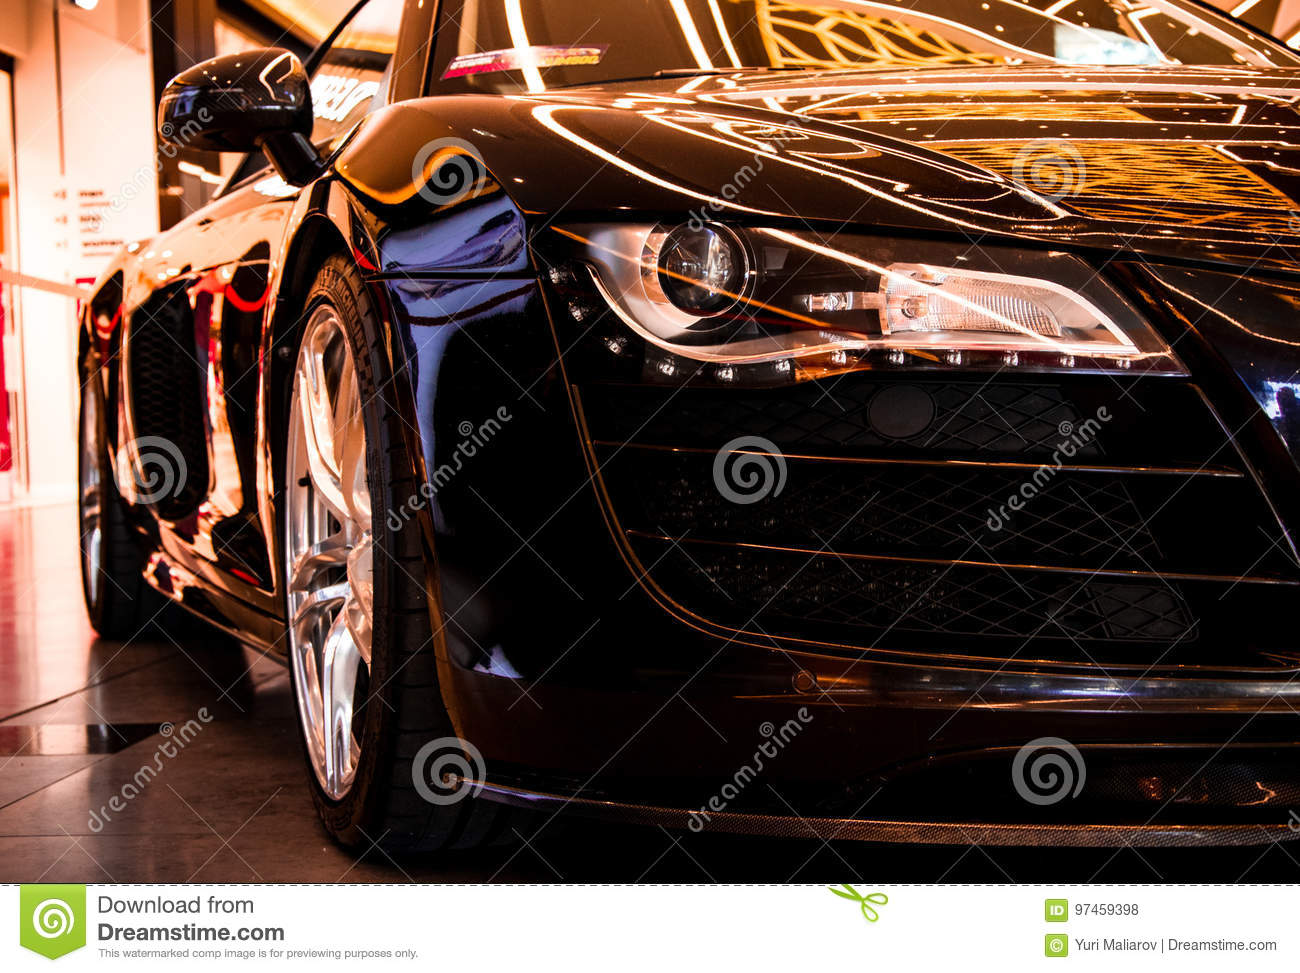 Audi R8 Quattro Black Sportcar Stock Photo Image Of Minsk Orange 97459398